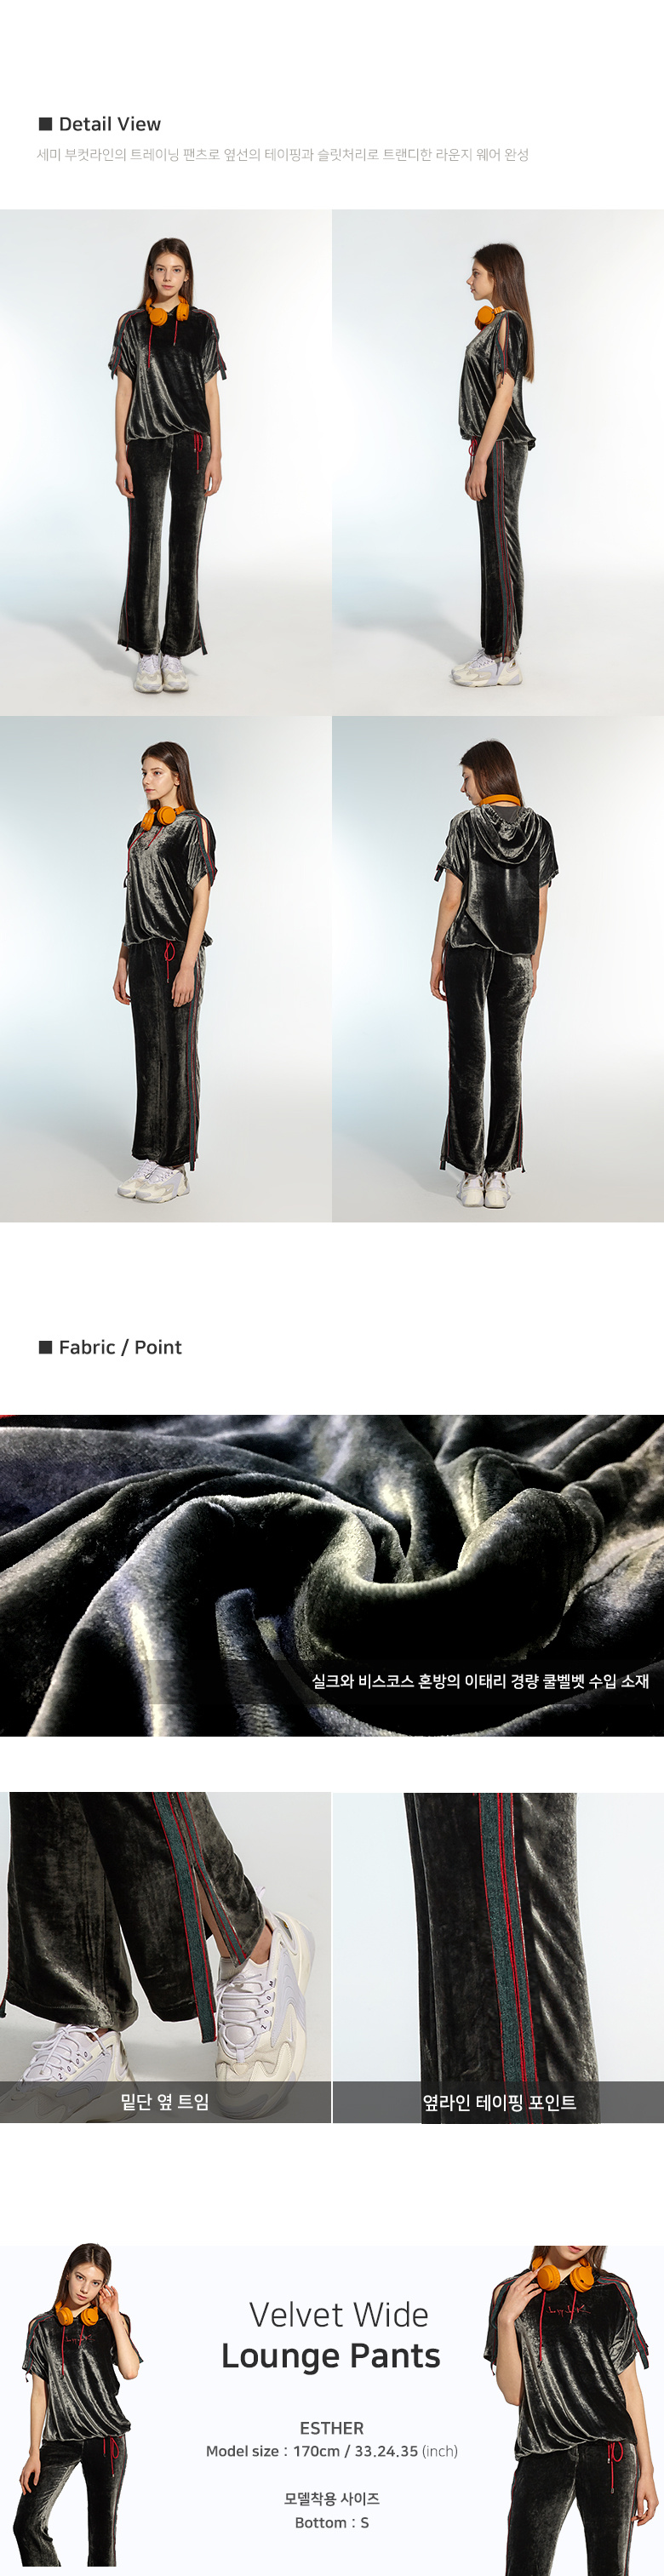 준바이준케이(JUN BY JUN K) Velvet Wide Lounge Pants(Khaki)